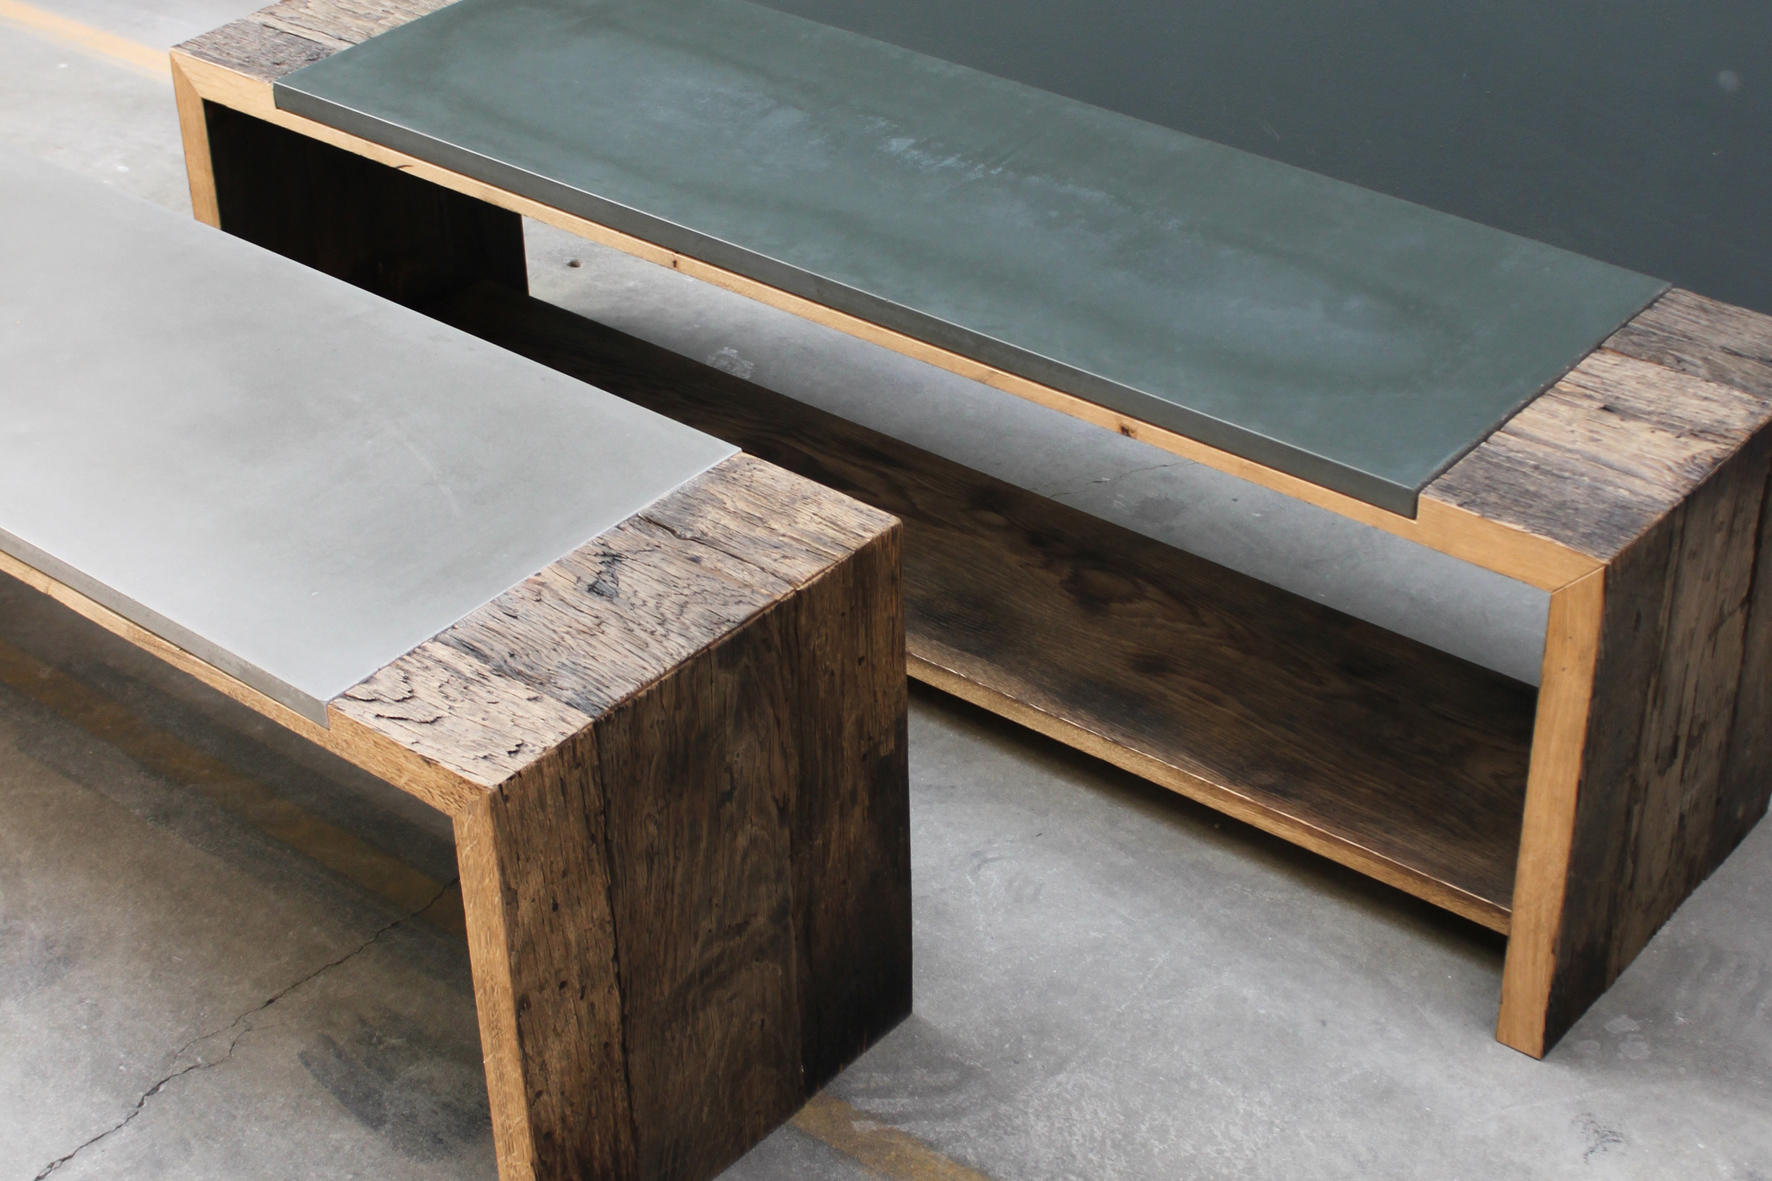 Beton sideboard interesting bench by concrete home design for Sideboard regal